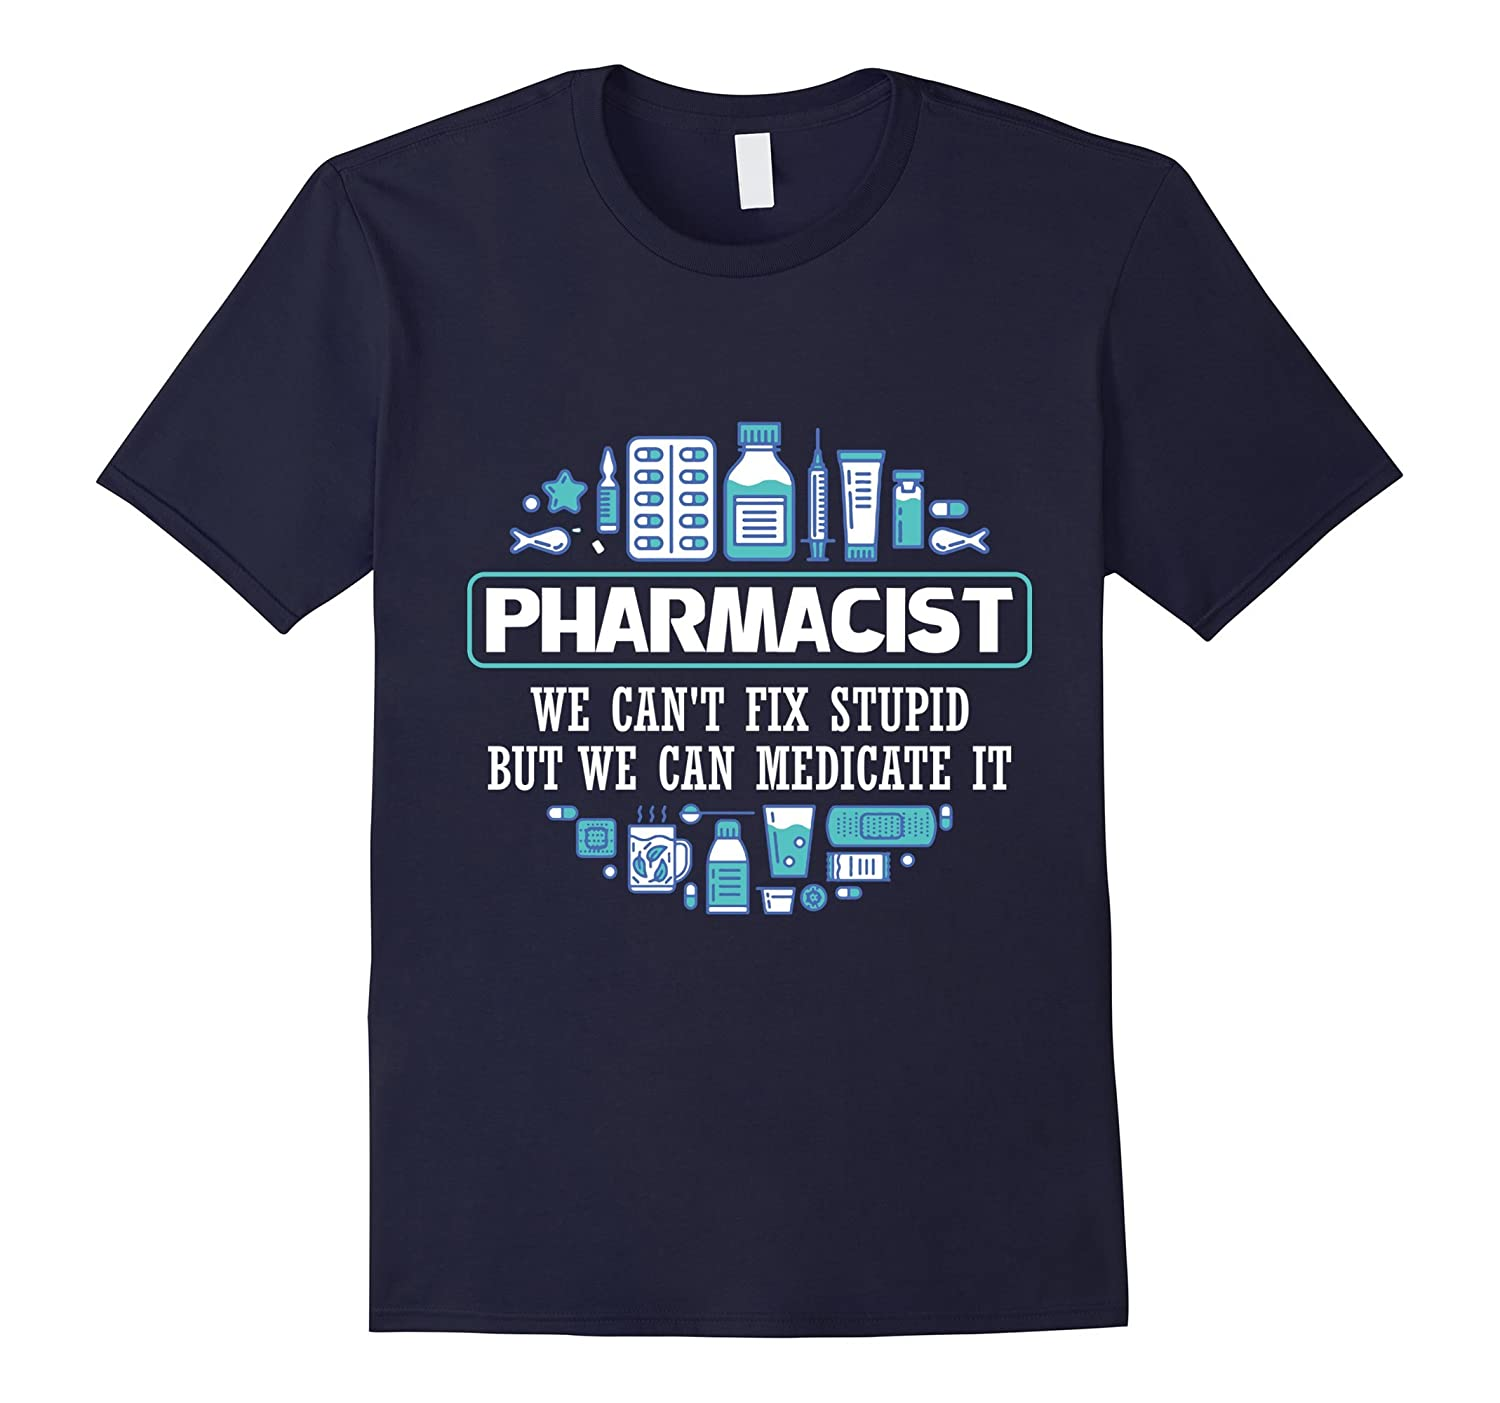 Funny Pharmacist T-Shirt for The Man Or Women Pharmacist Tee-TJ